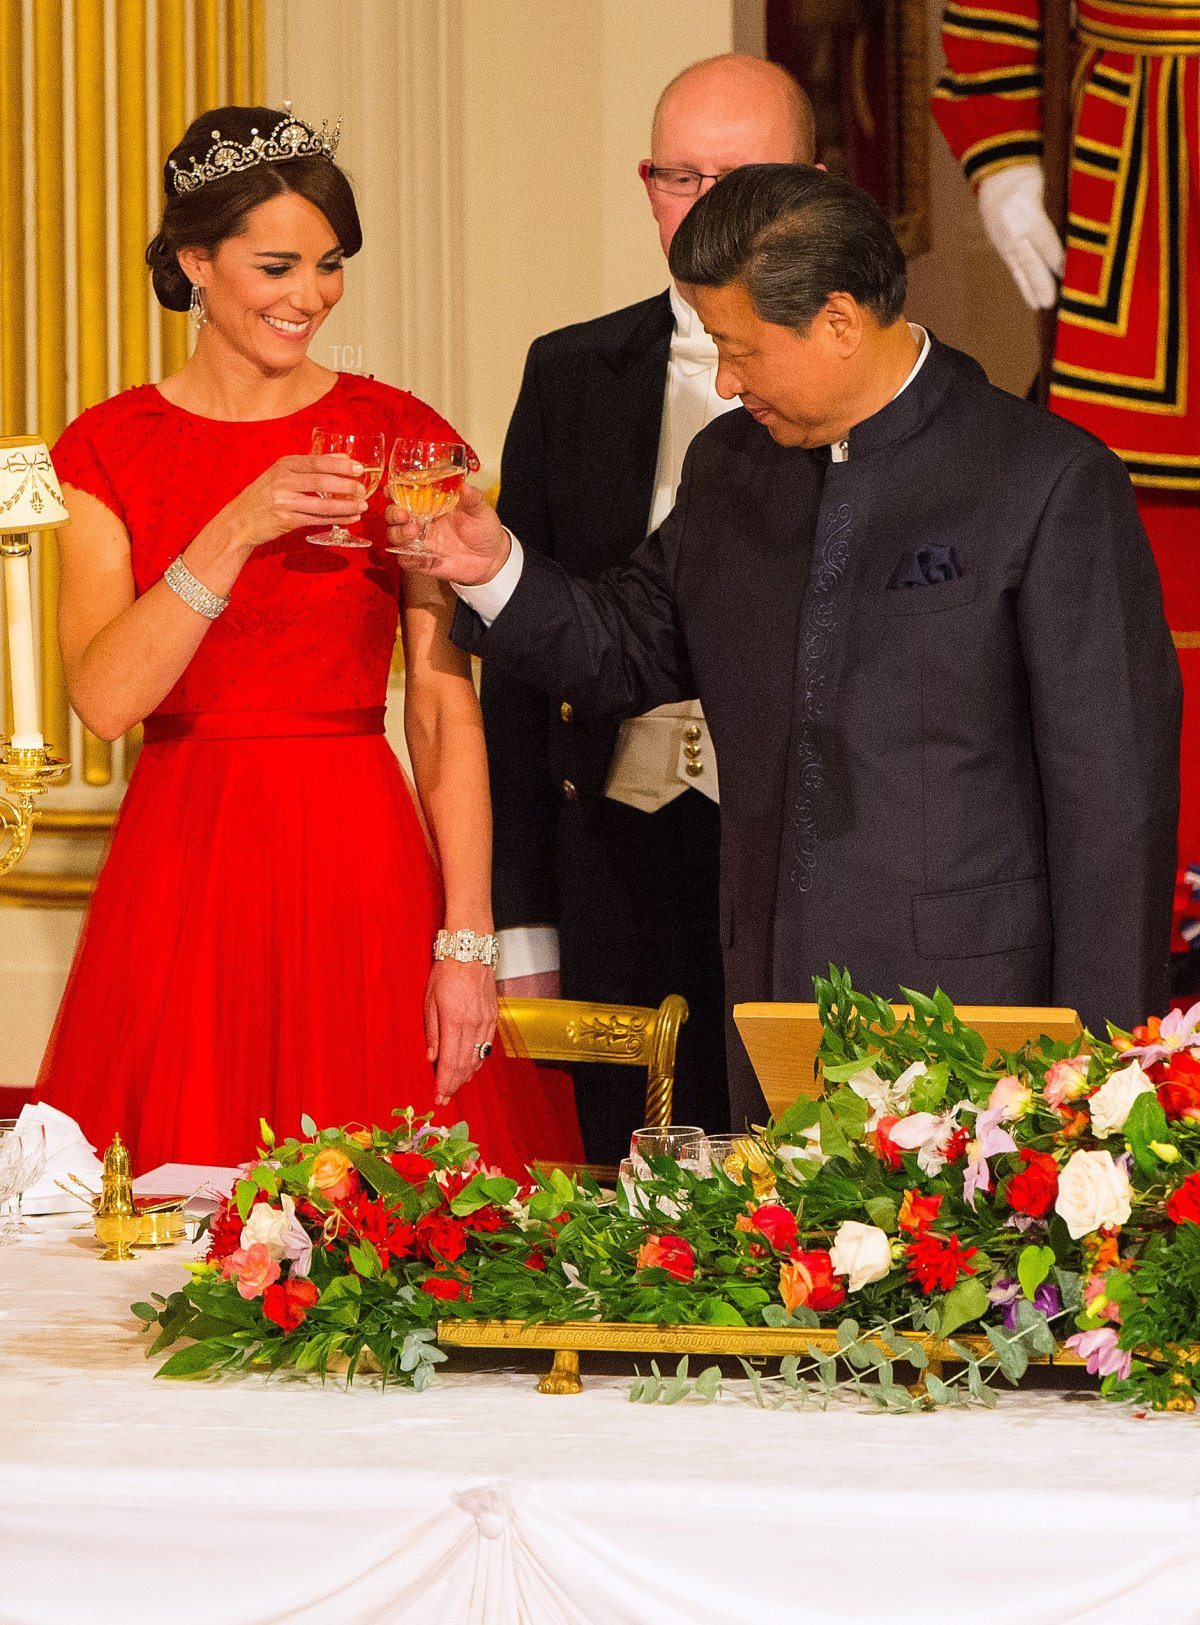 Chinese President Xi Jinping (R) raises a glass with Britain's Catherine, Duchess of Cambridge, during State Banquet hosted by Britain's Queen Elizabeth II (unseen) at Buckingham Palace in London, on October 20, 2015, on the first official day of Xi's state visit. Chinese President Xi Jinping arrived for a four-day state visit as the government of Prime Minister David Cameron seeks stronger trade ties with the world's second-largest economy